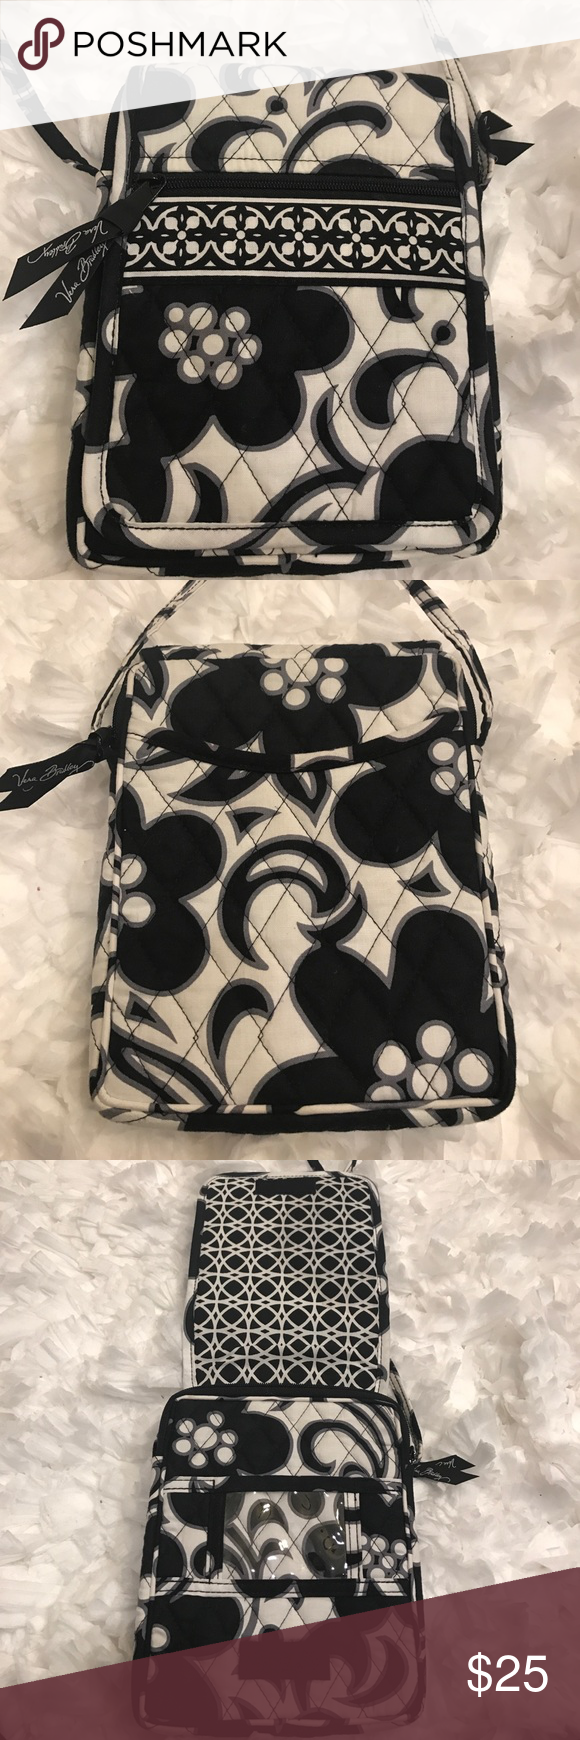 Vera Bradley Mini Hipster Crossbody Like new condition. No signs of wear. Mini Hipster. Night and Day pattern. Velcro shut. Lots of different pockets. Vera Bradley Bags Crossbody Bags